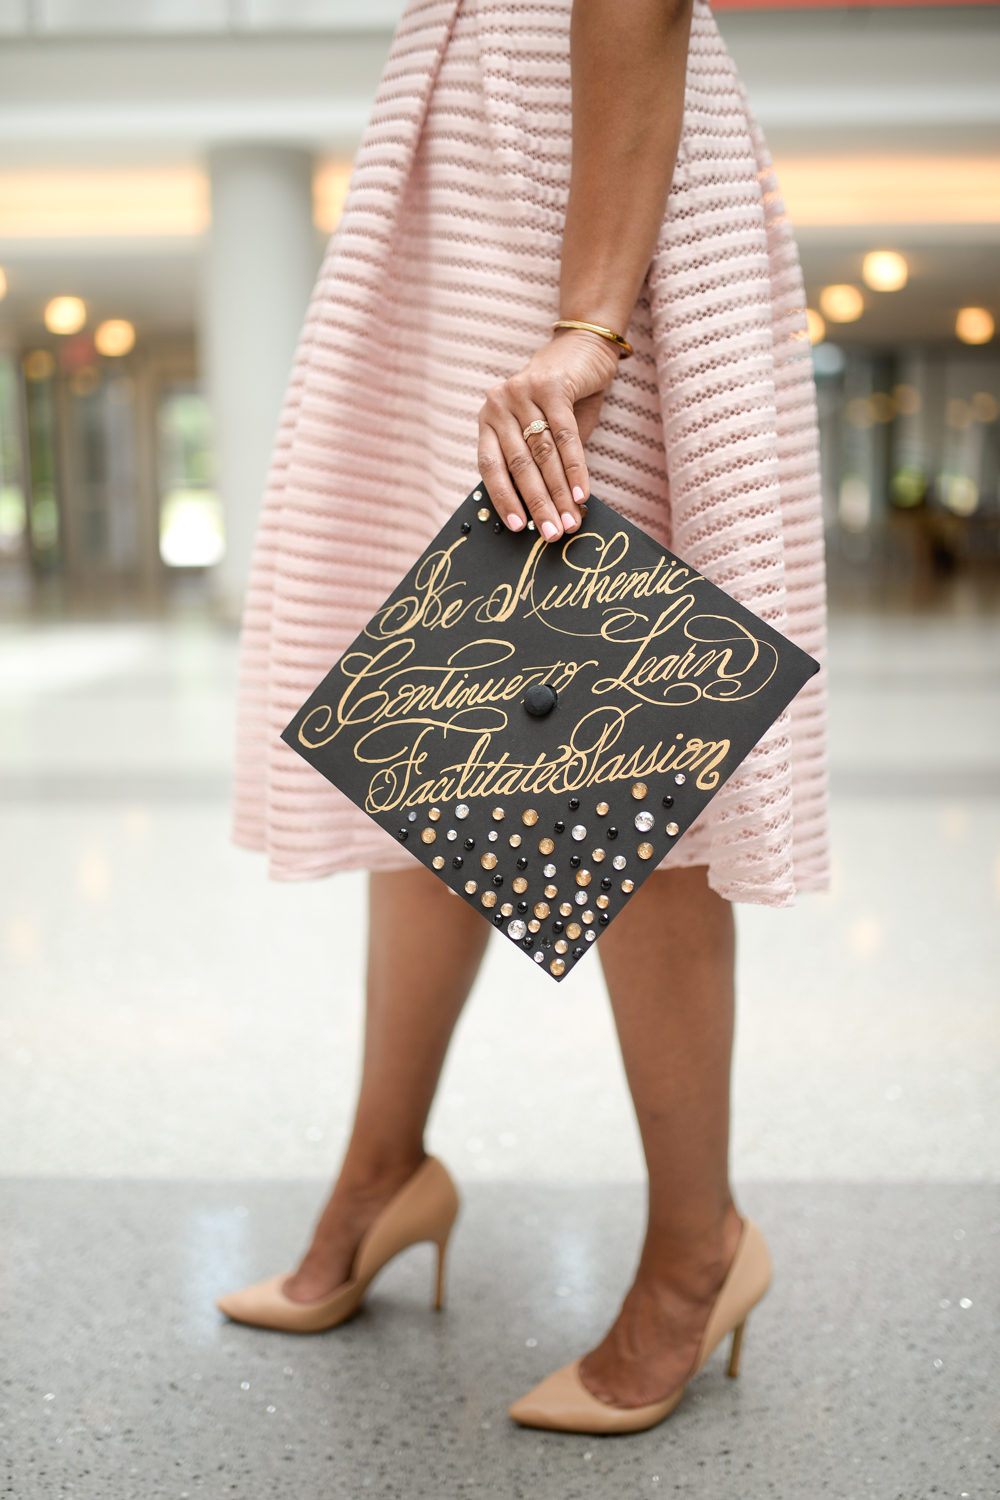 North Carolina State Graduation Cap Calligraphy 6